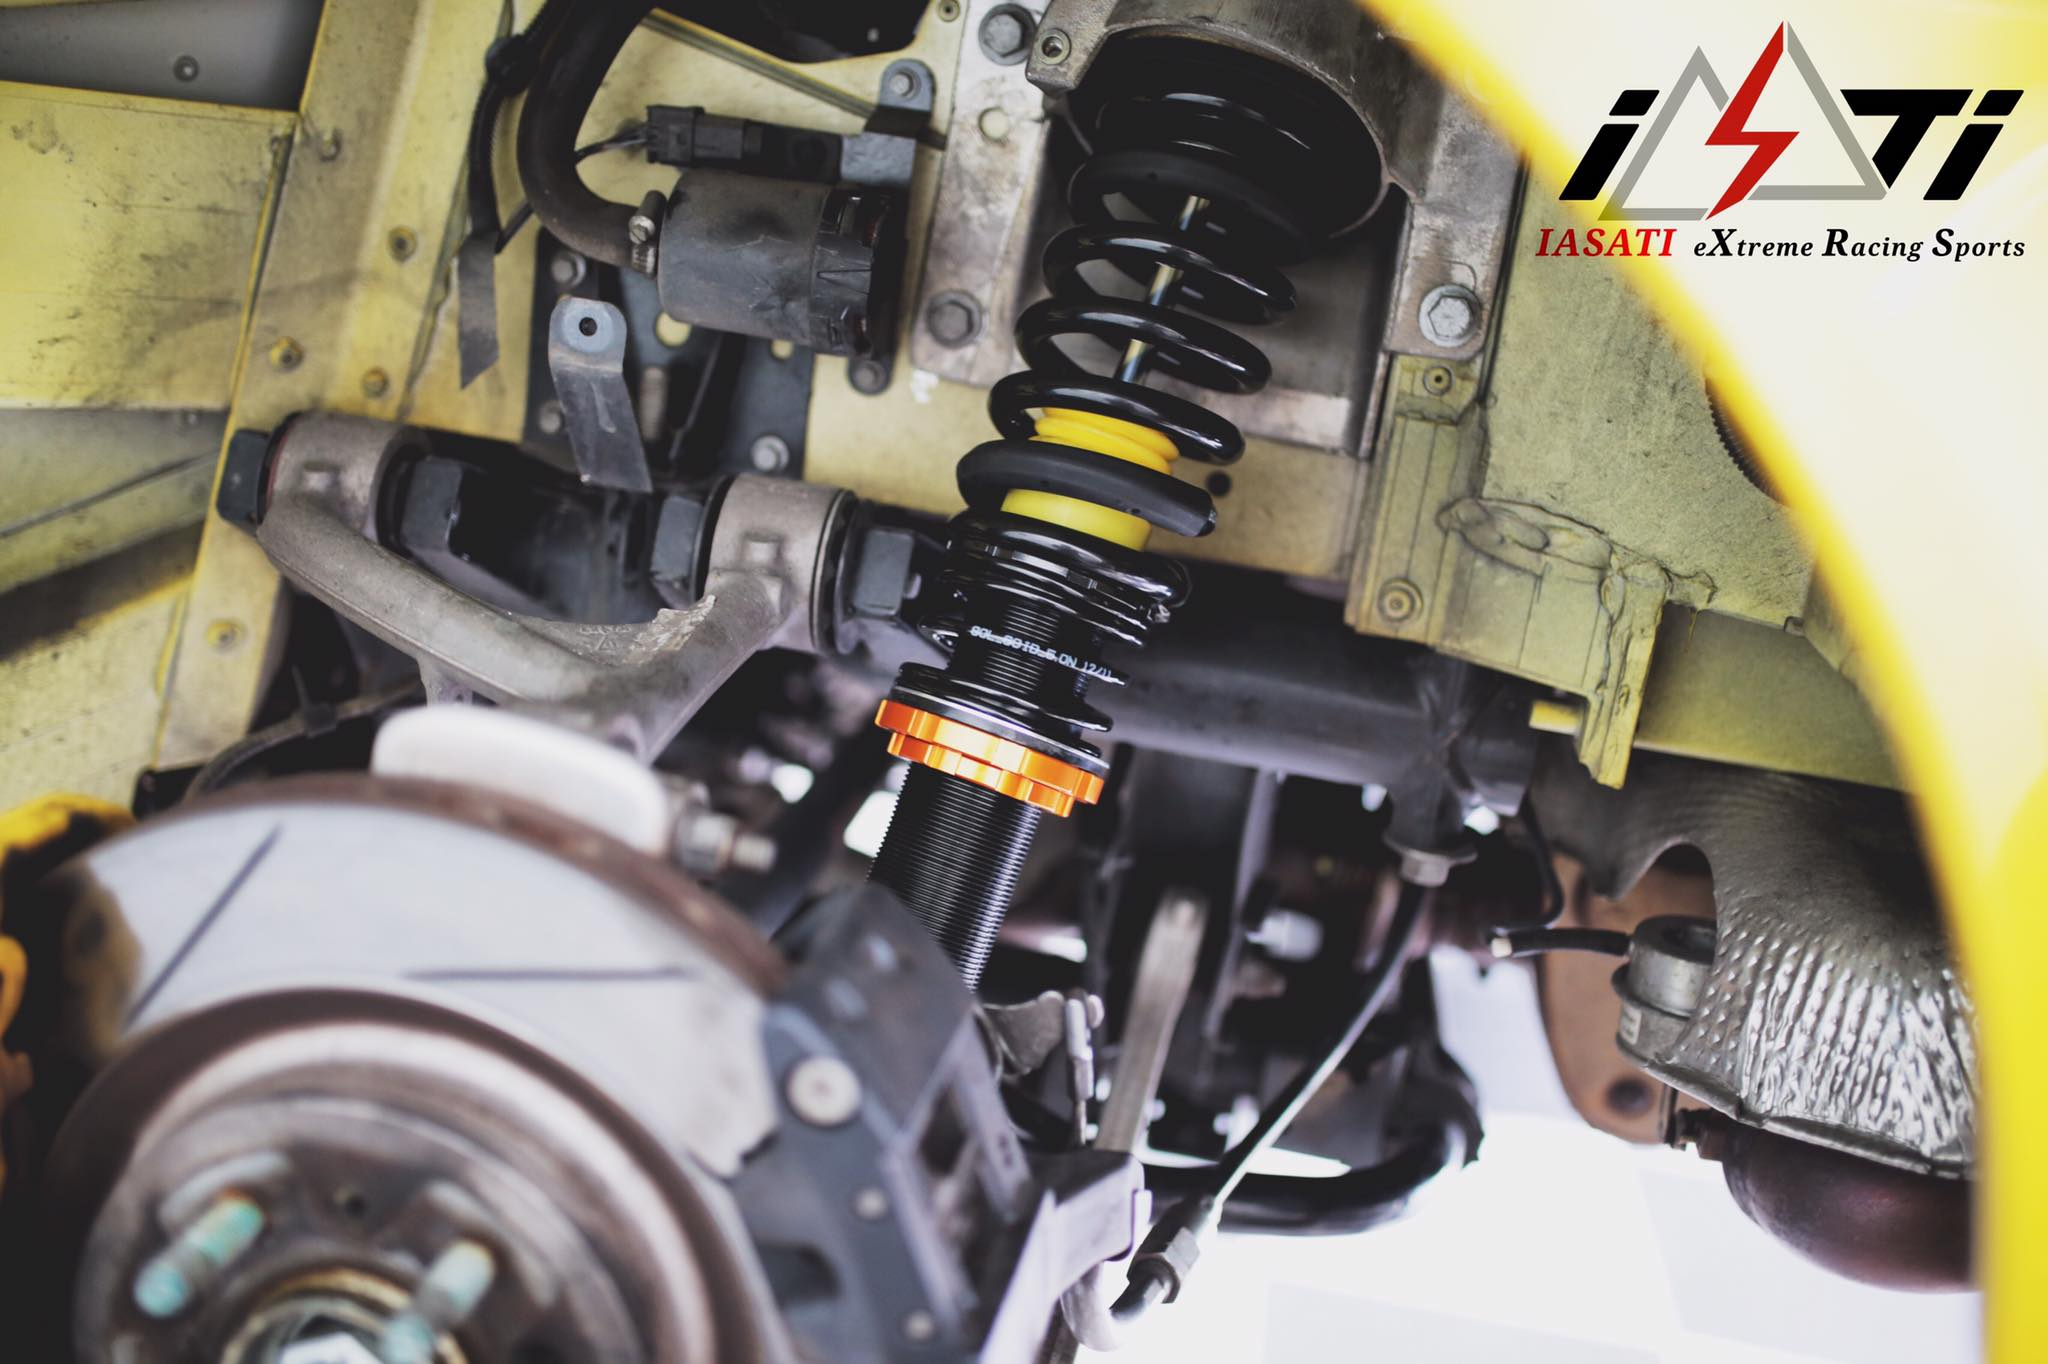 IASATI - Automobile Shock Absorbers, Suspension, Coilover, Brake-kits for modified-car